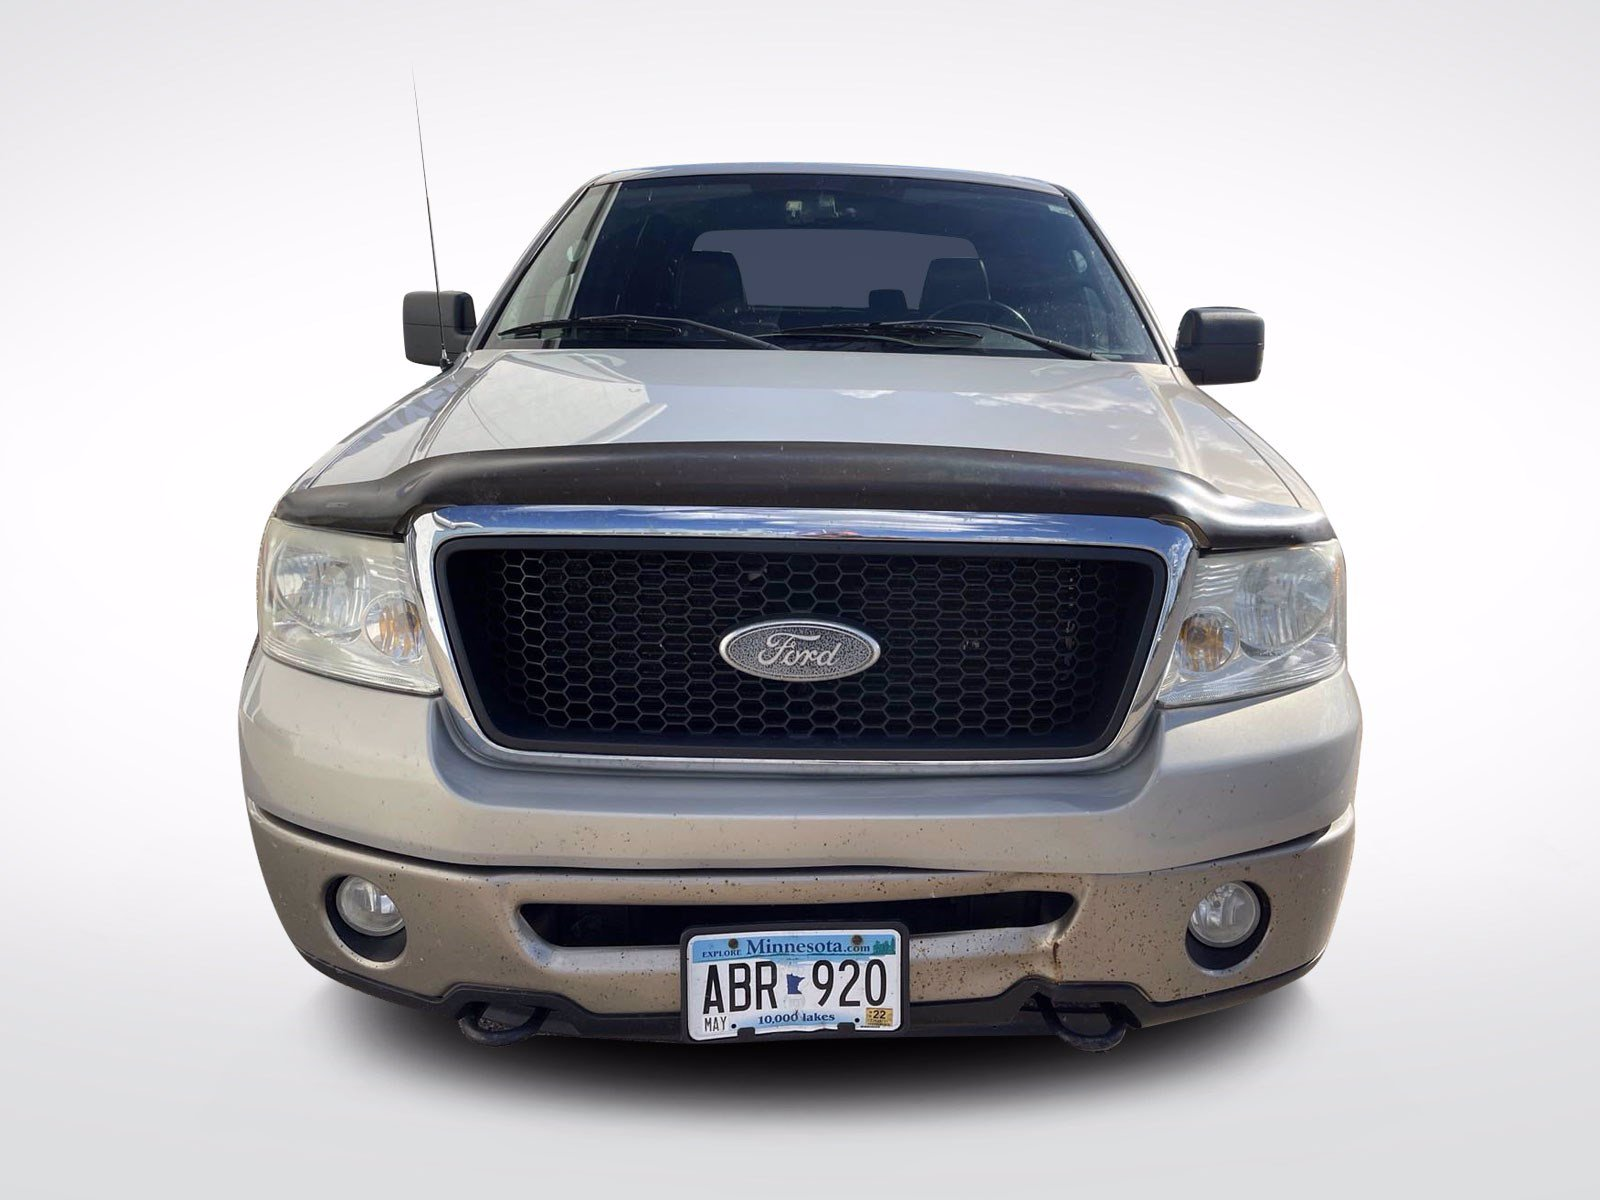 Used 2006 Ford F-150 Lariat with VIN 1FTPW14526FA03688 for sale in Baxter, Minnesota